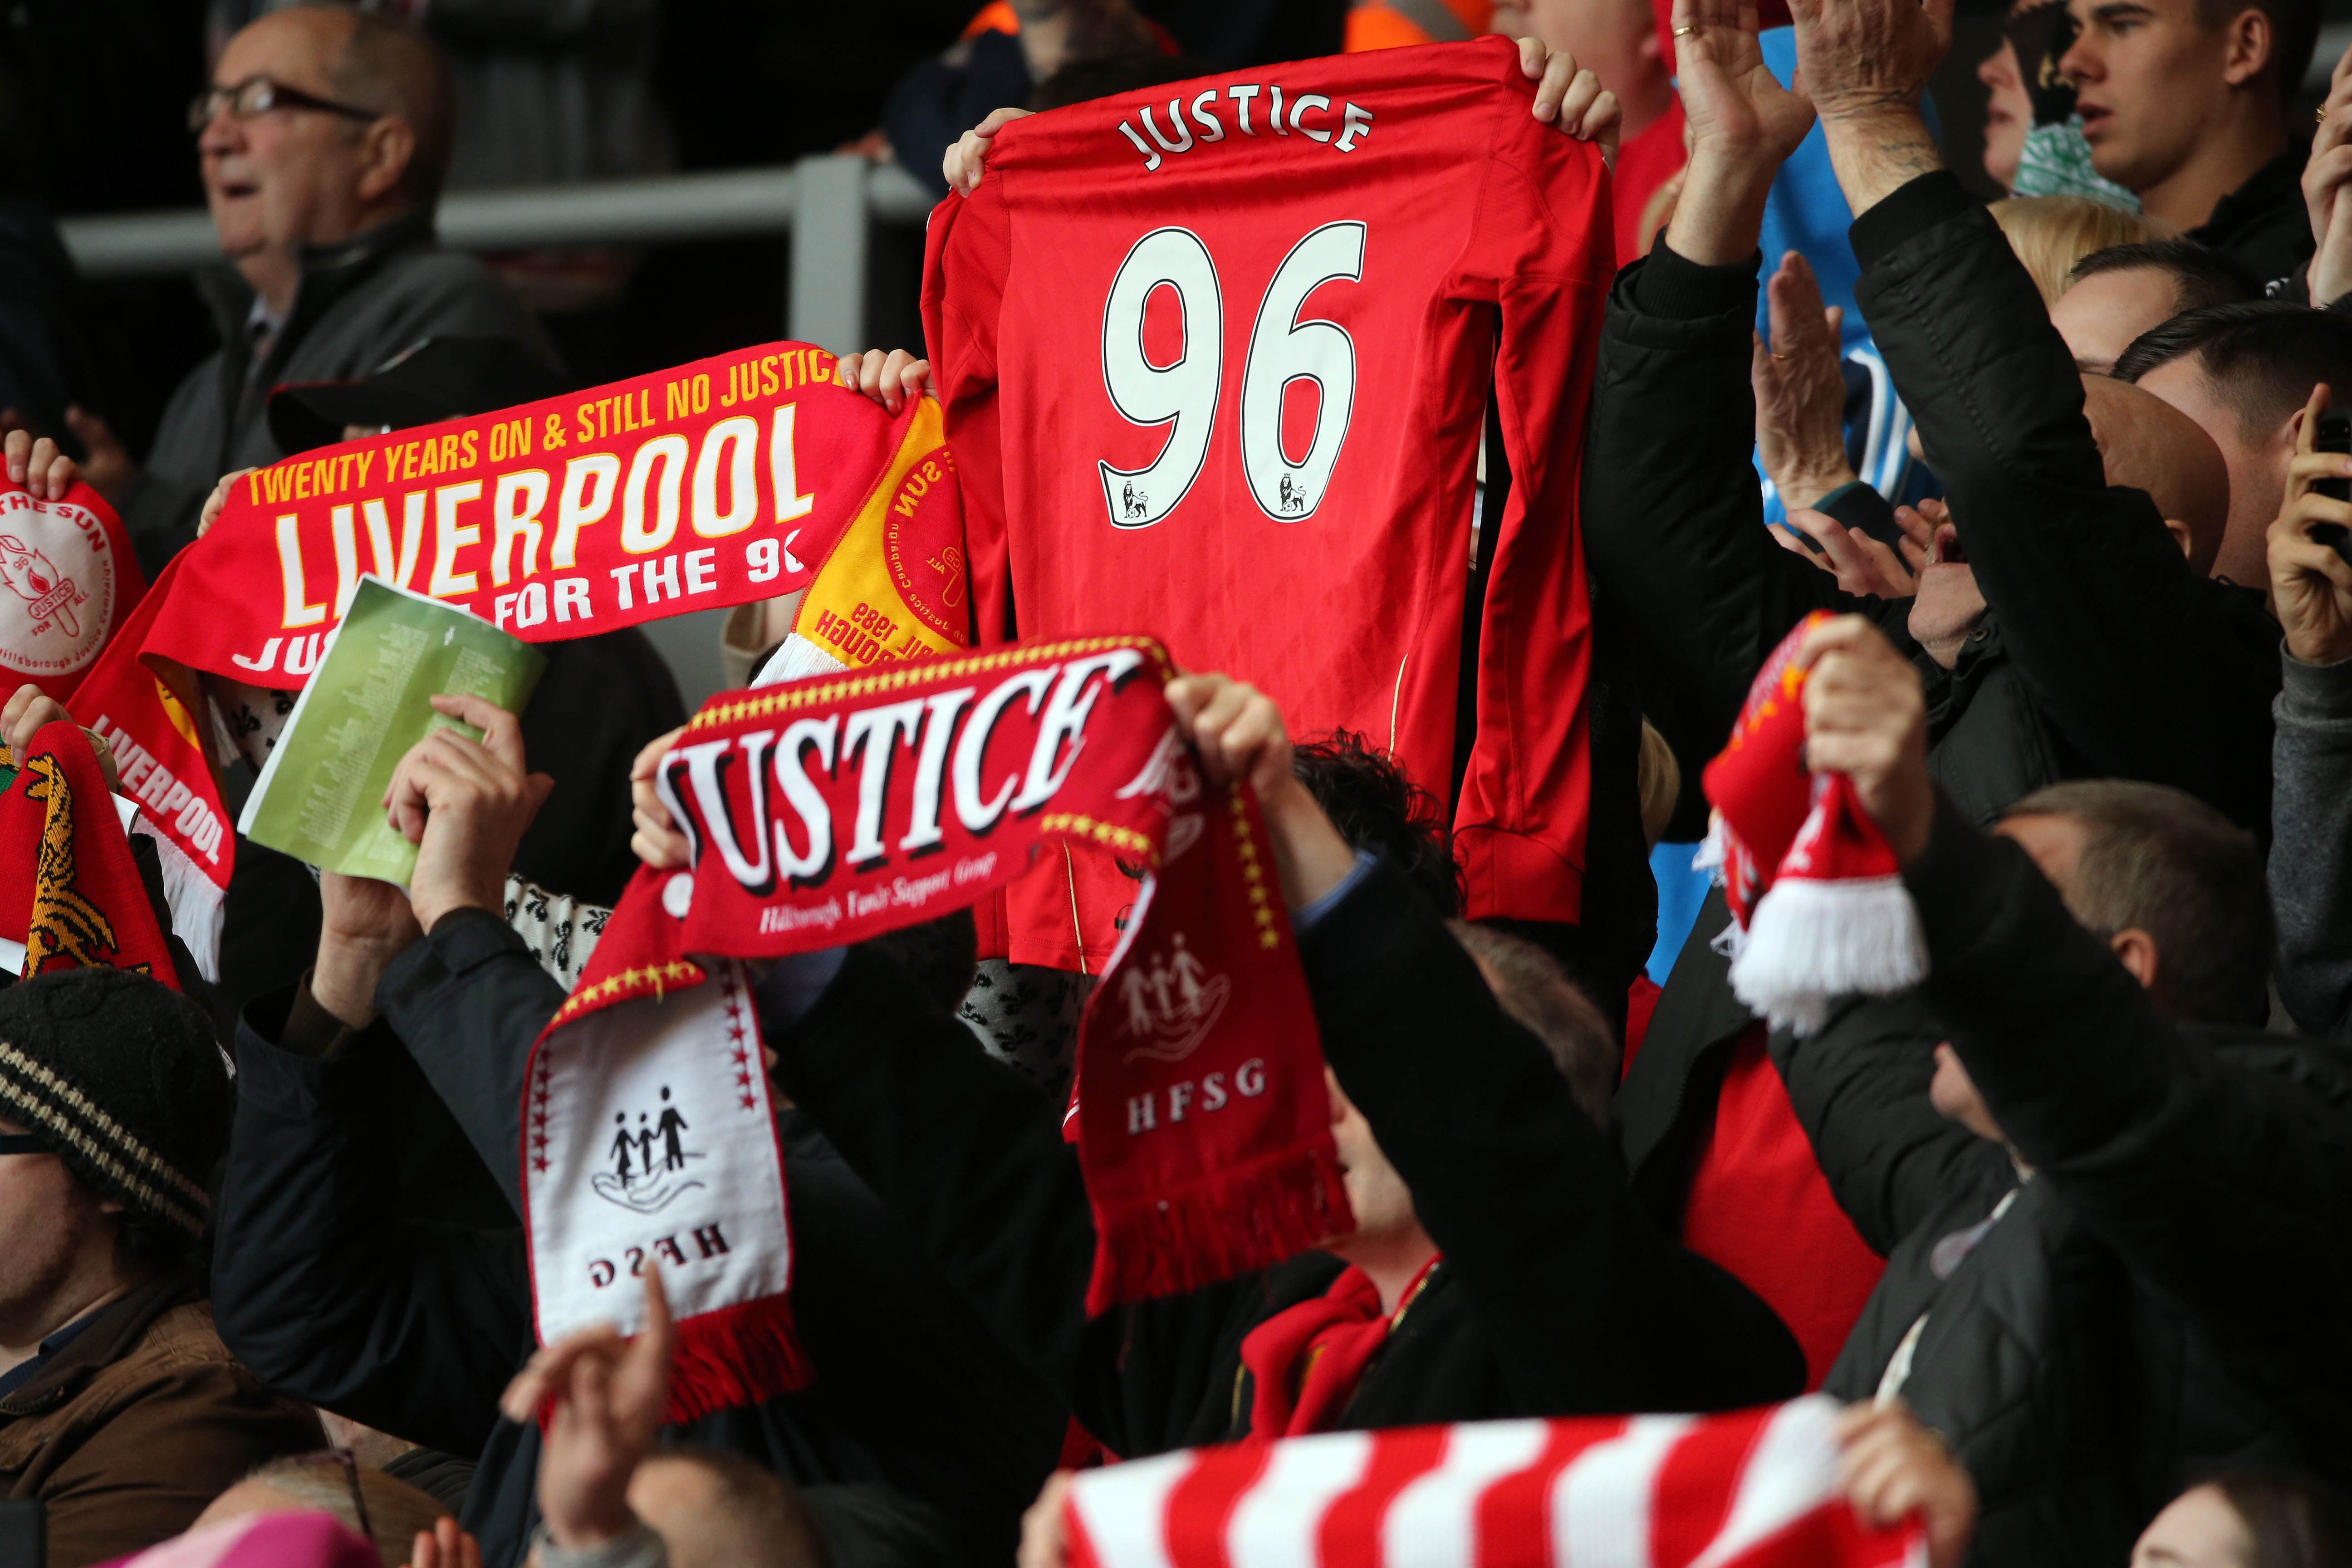 A Memorial Is Held For The 24th Anniversary Of The Hillsborough Tragedy